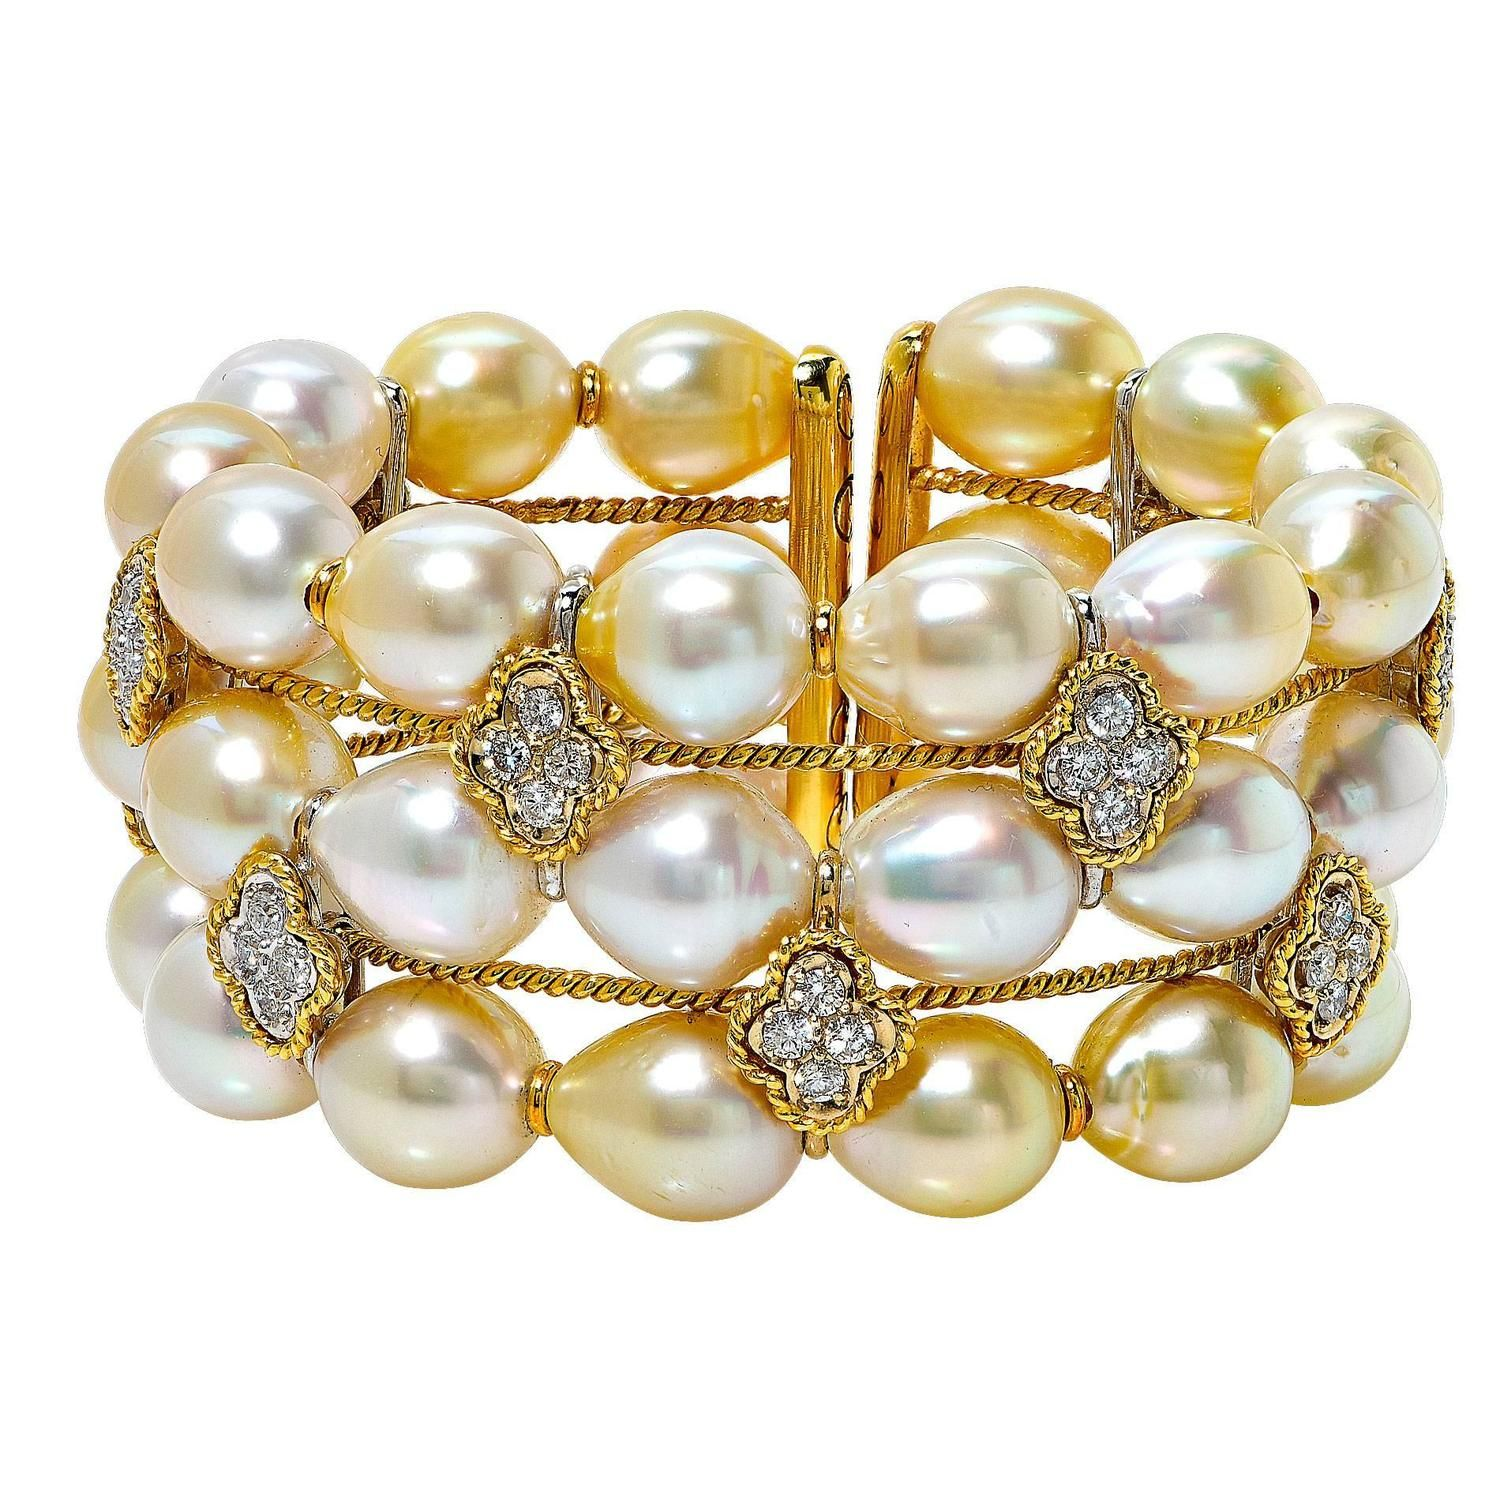 dp orchid pave diamond bracelet paradise com eleonore of yellow amazon view gold pearl house larger